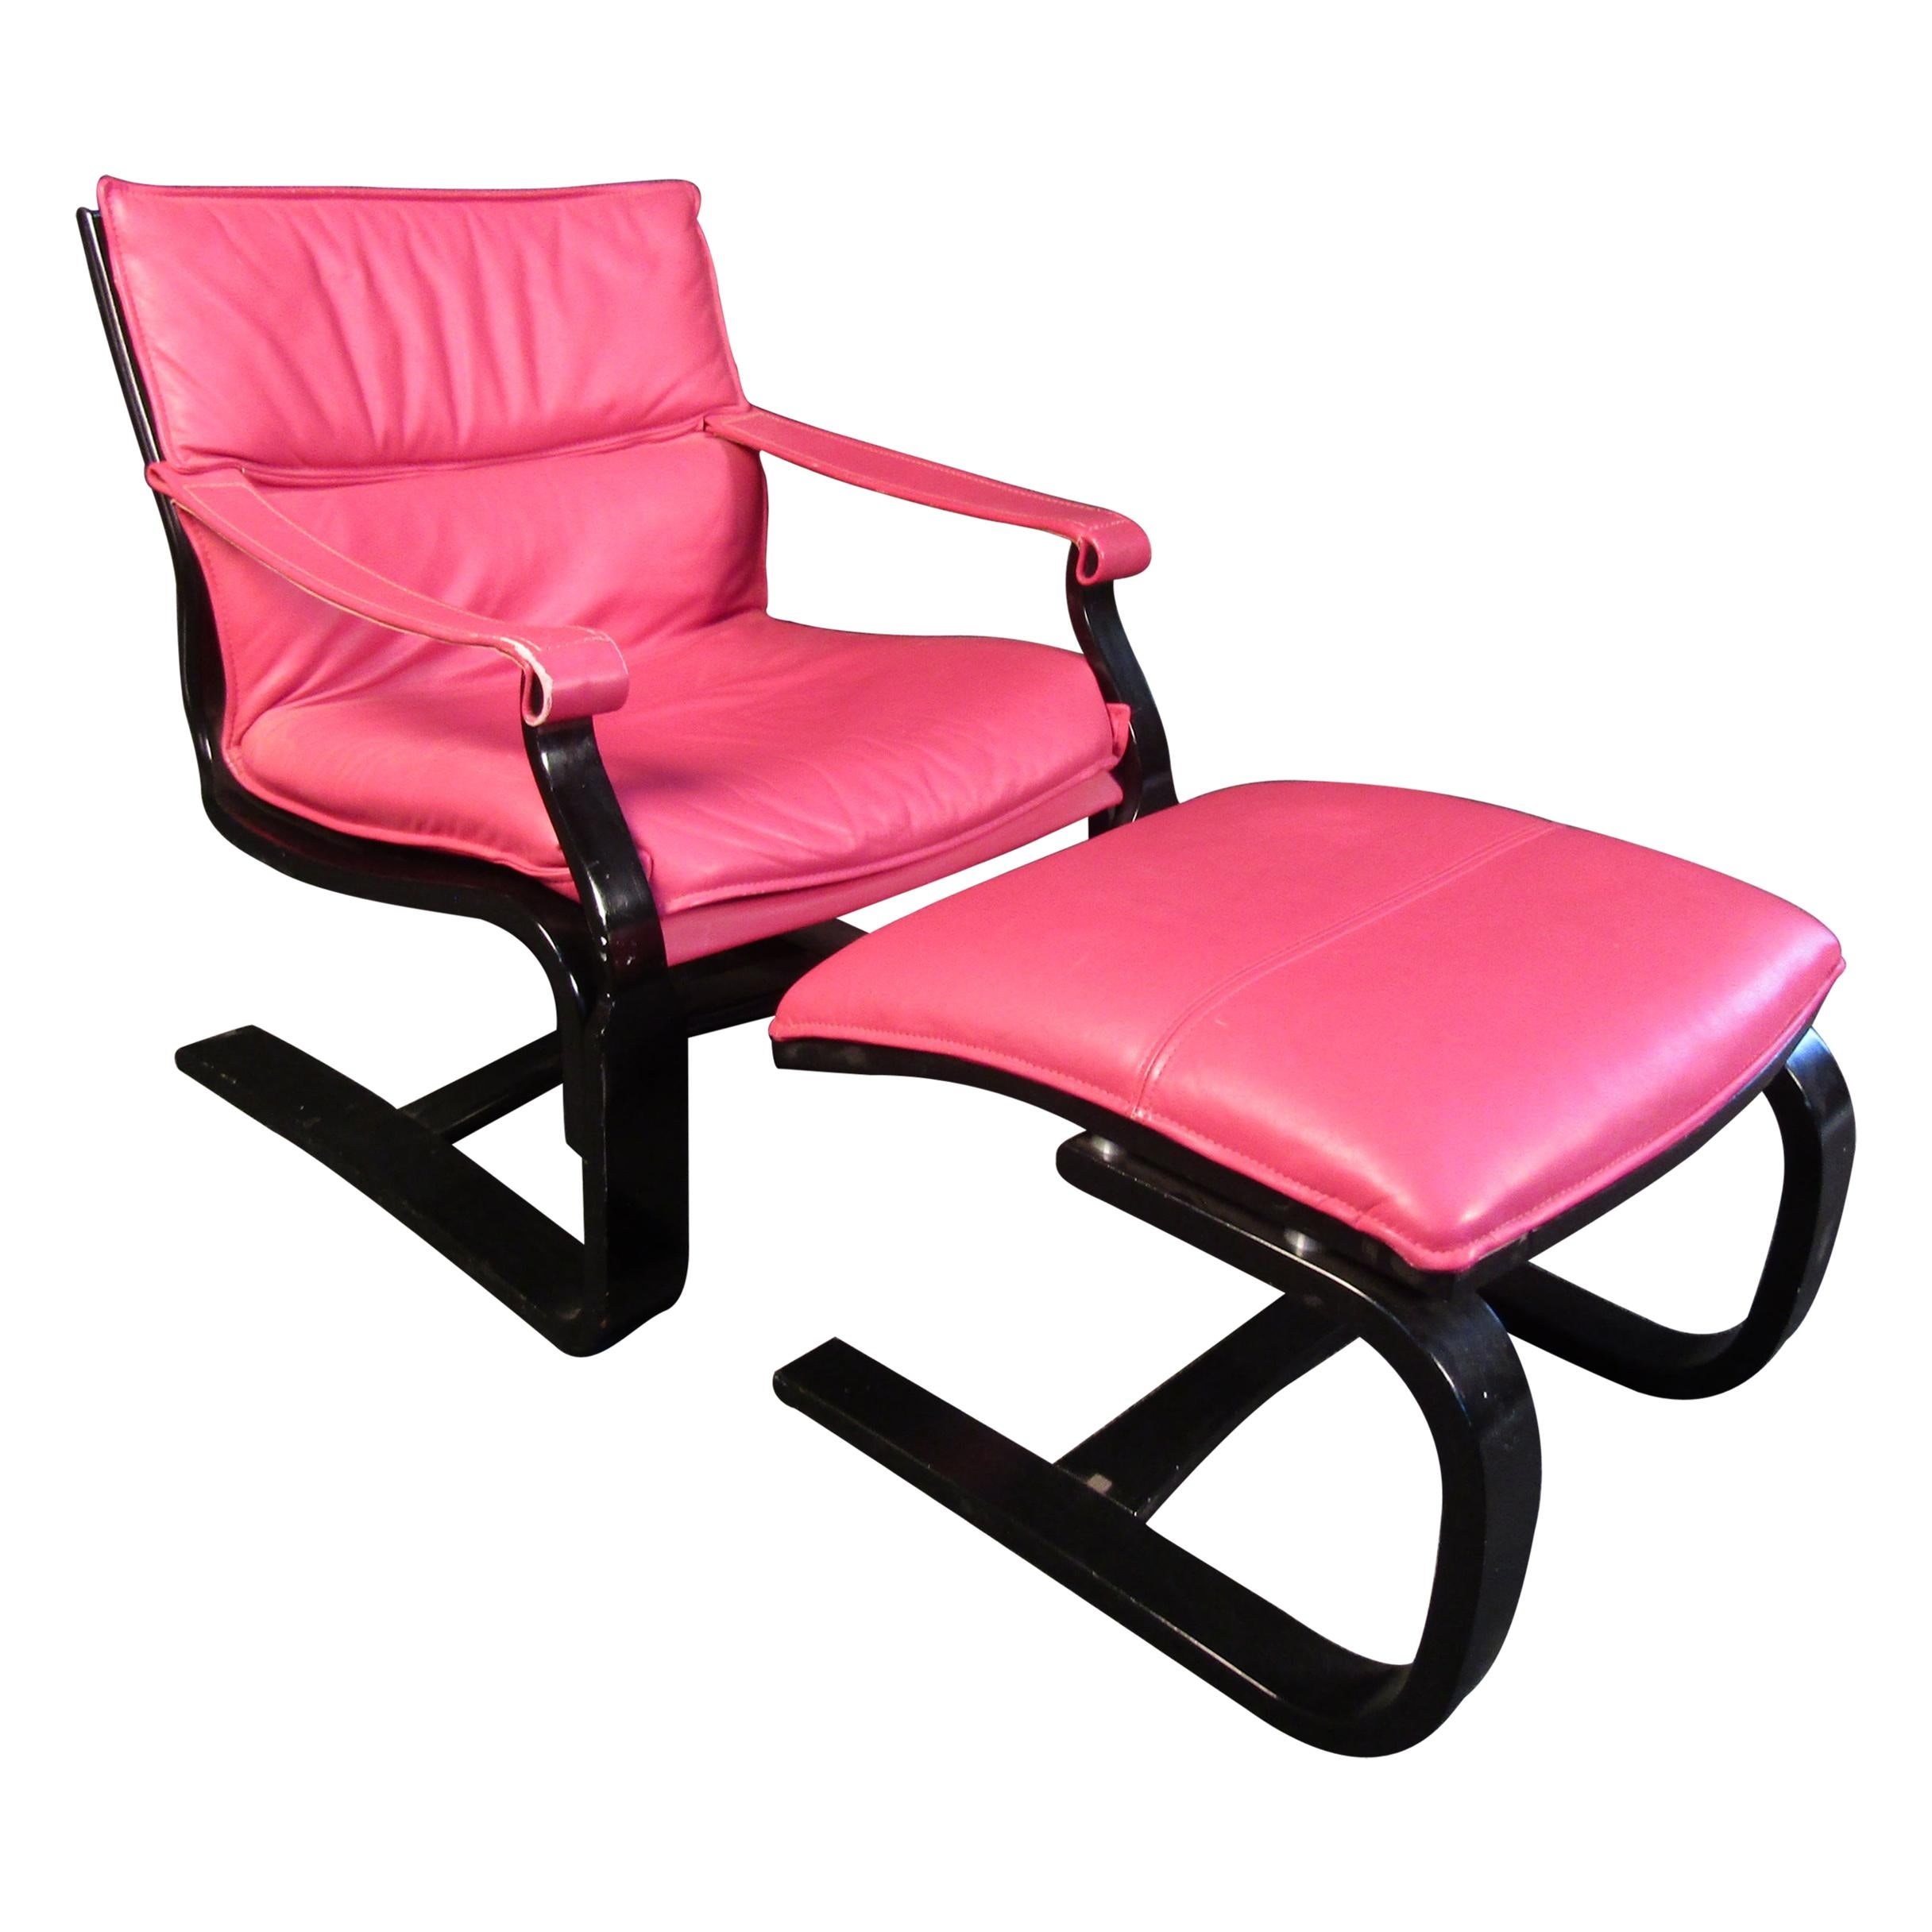 Vintage Leather Lounge Chair and Ottoman Set